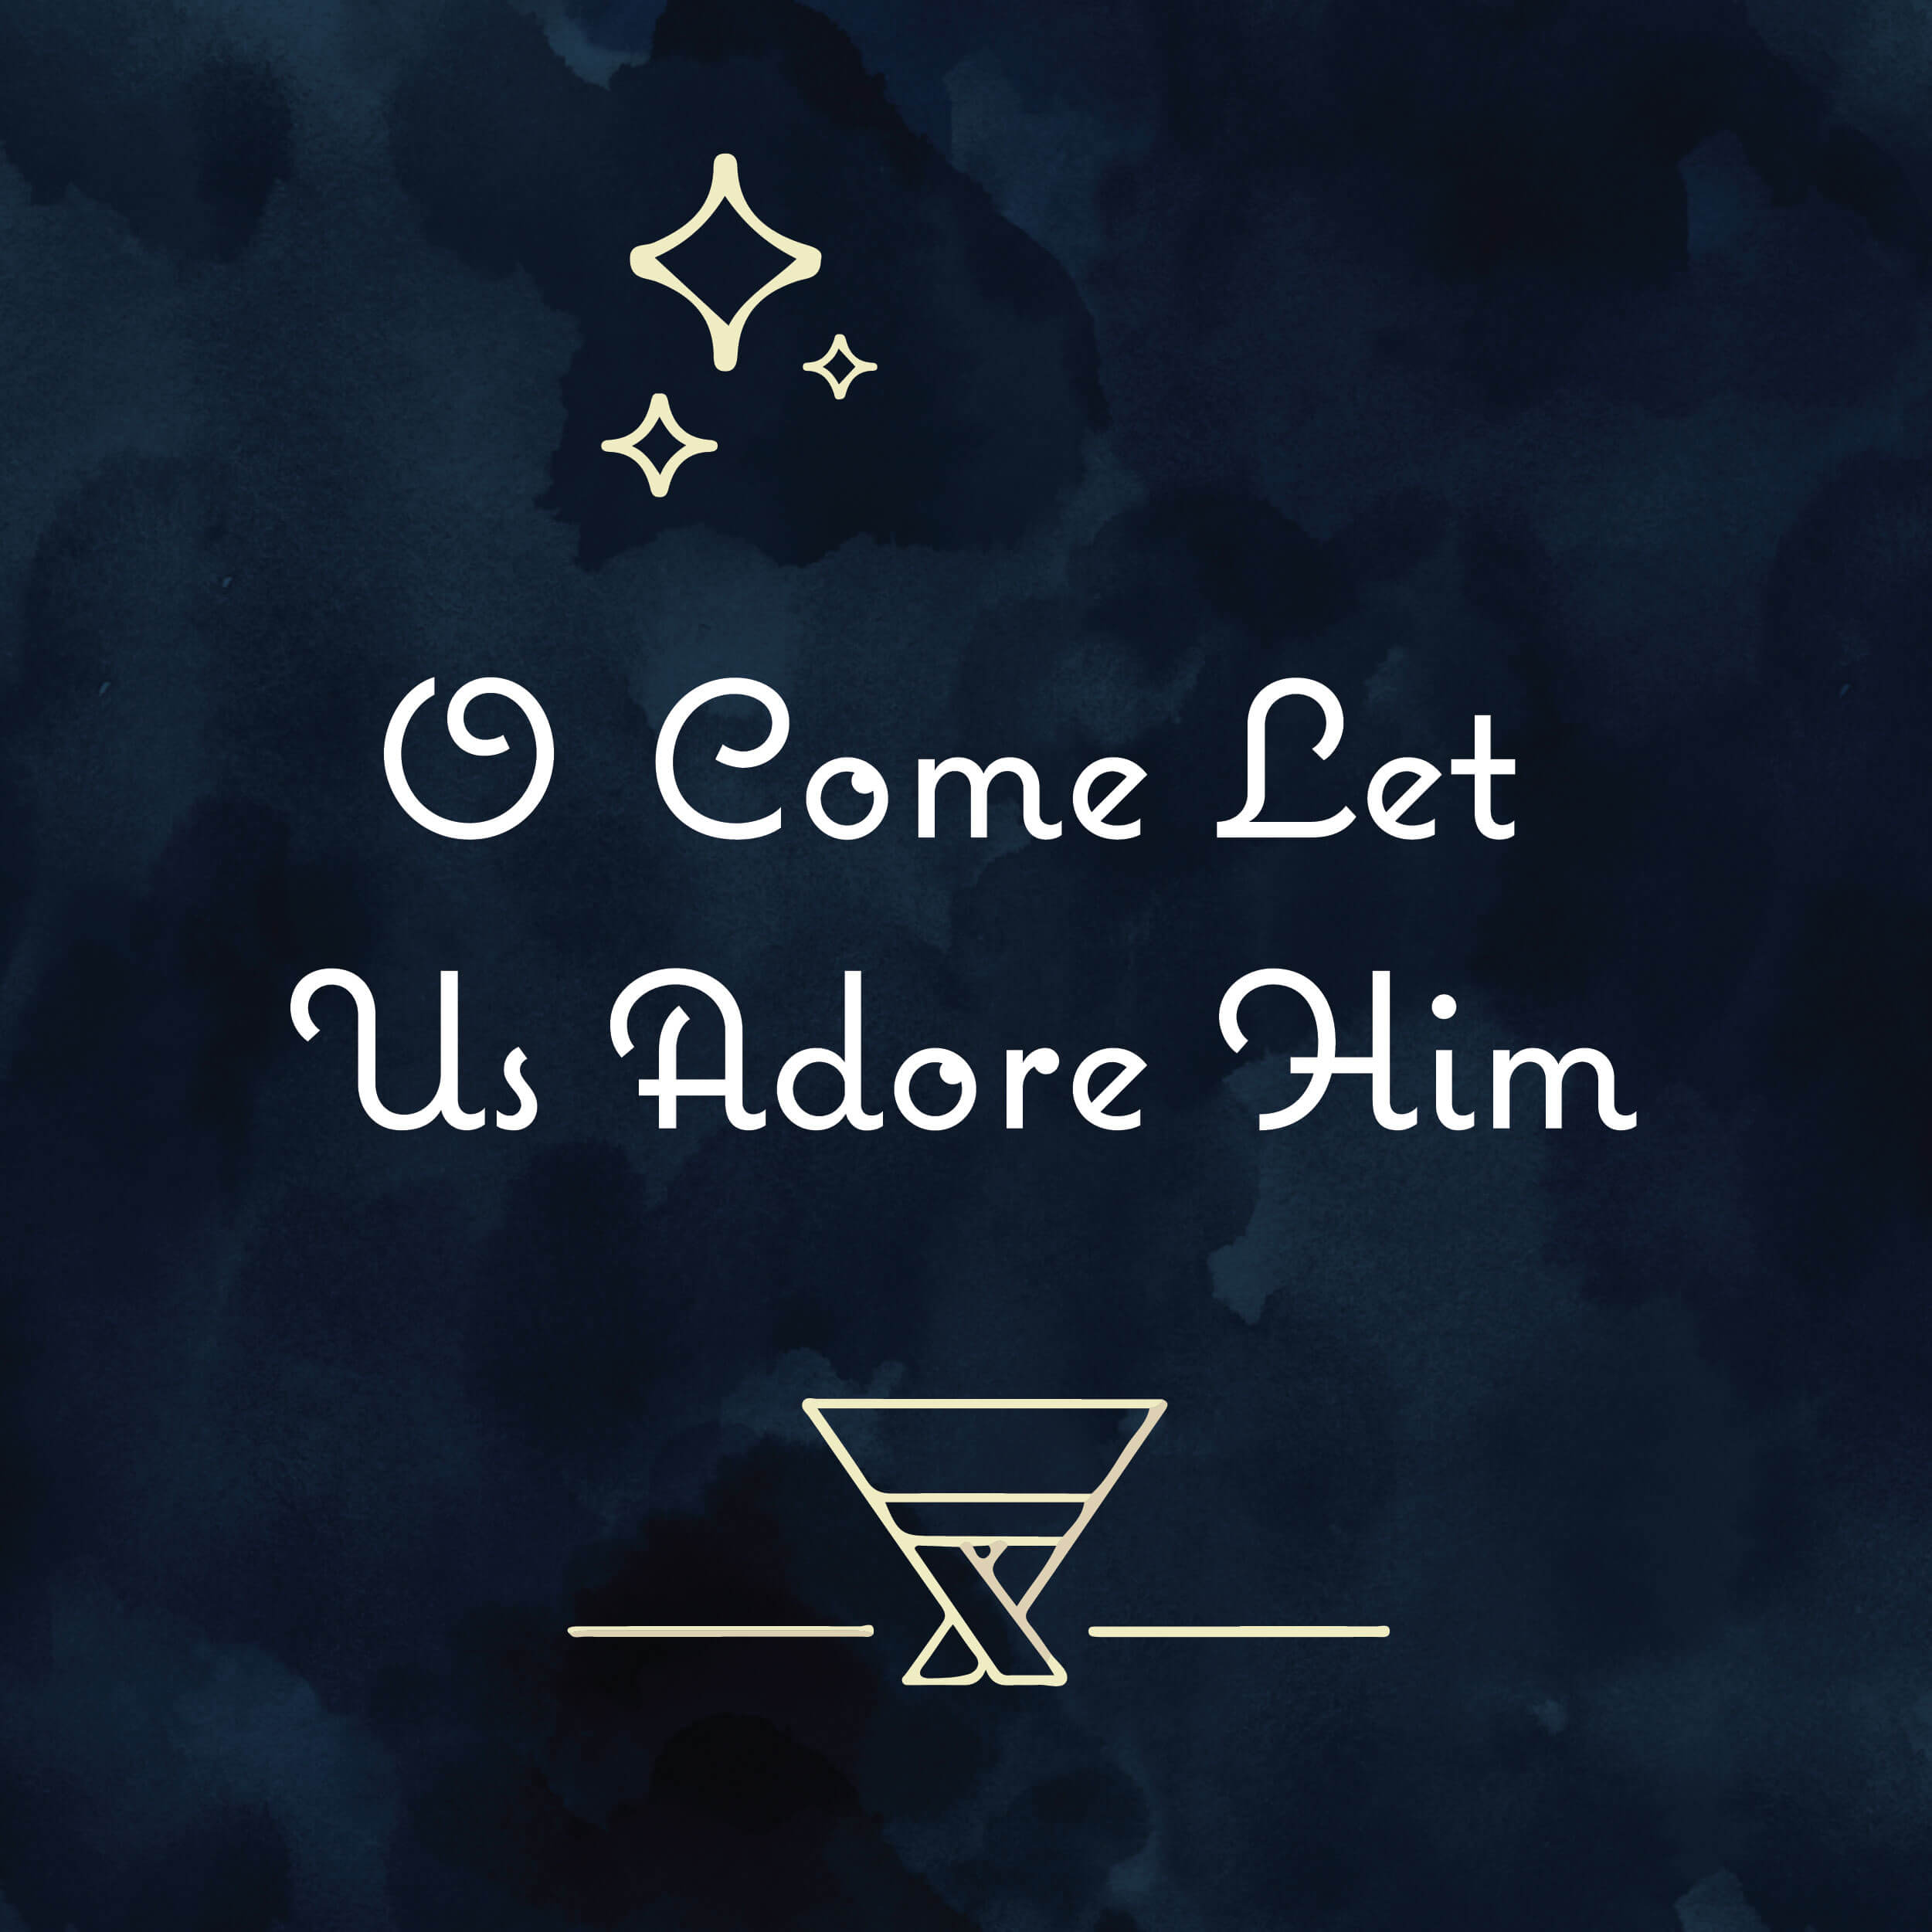 O Come Let Us Adore Him: O come ye to Bethlehem